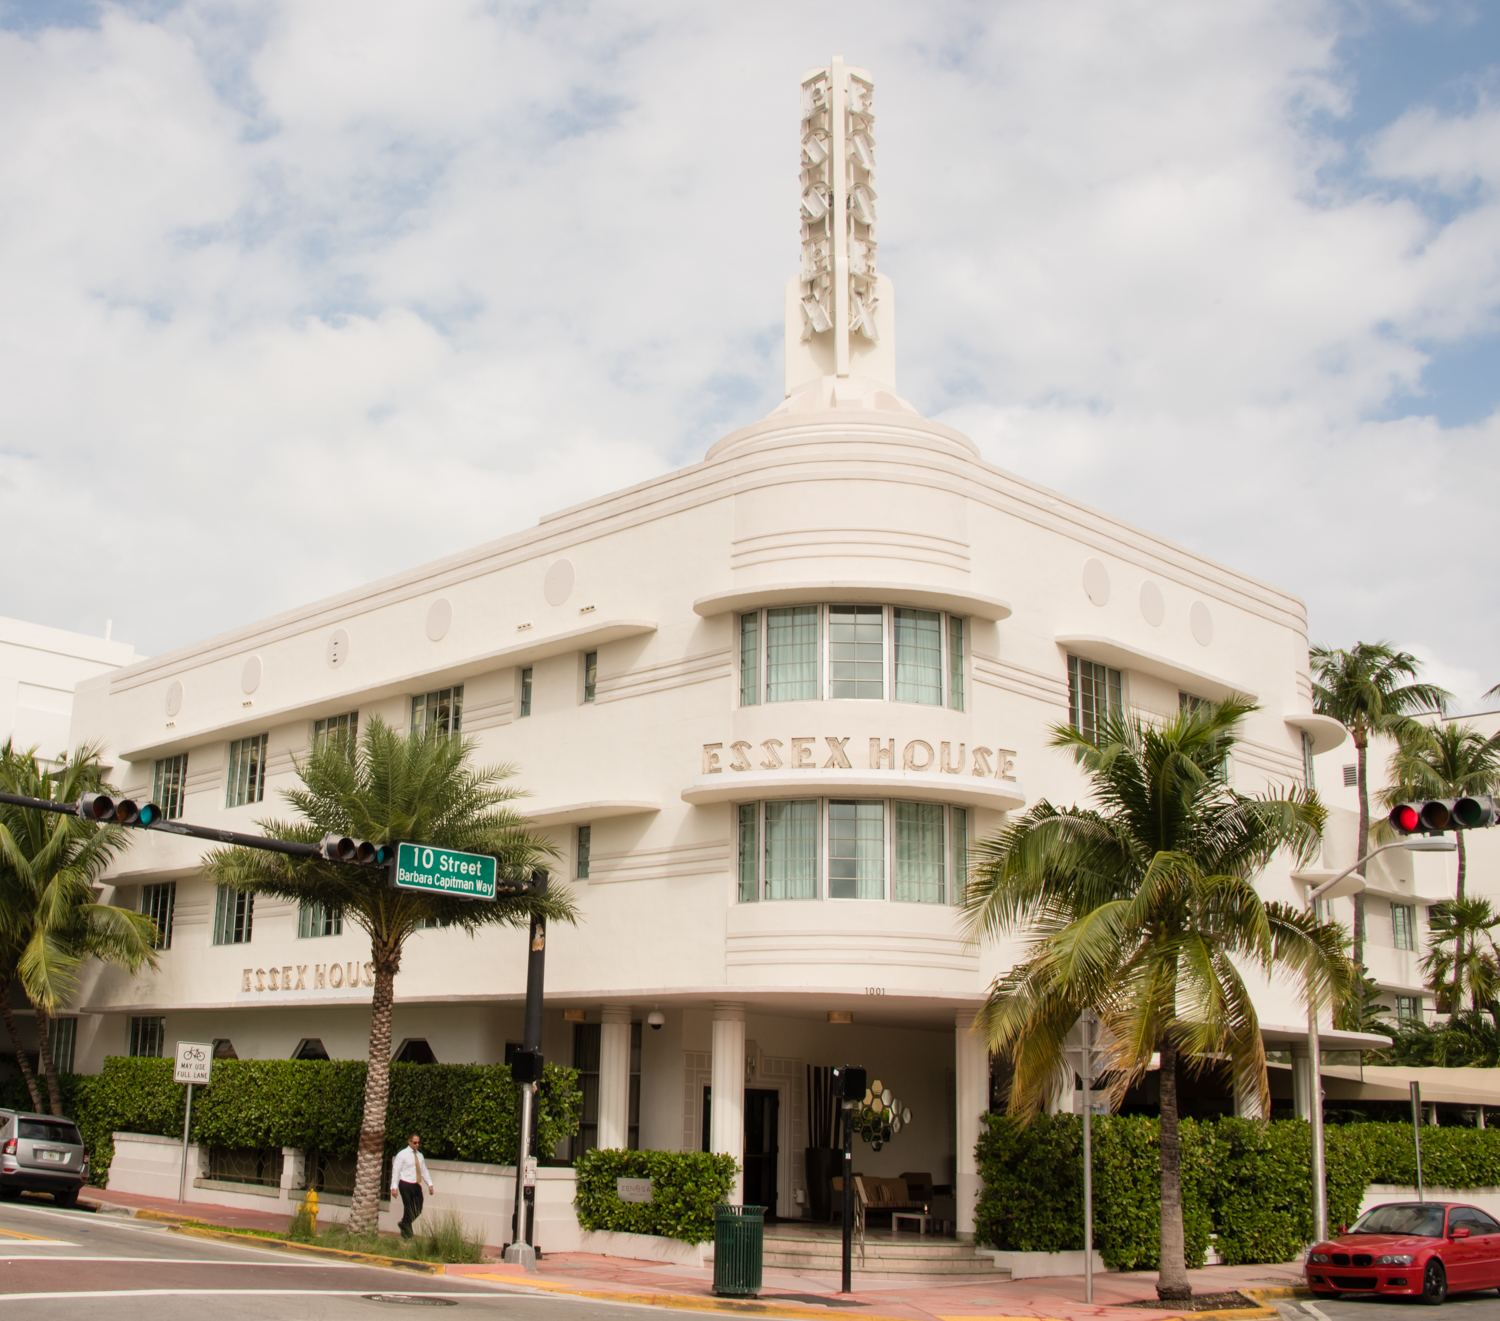 art deco walk in the south beach district of miami beach florida